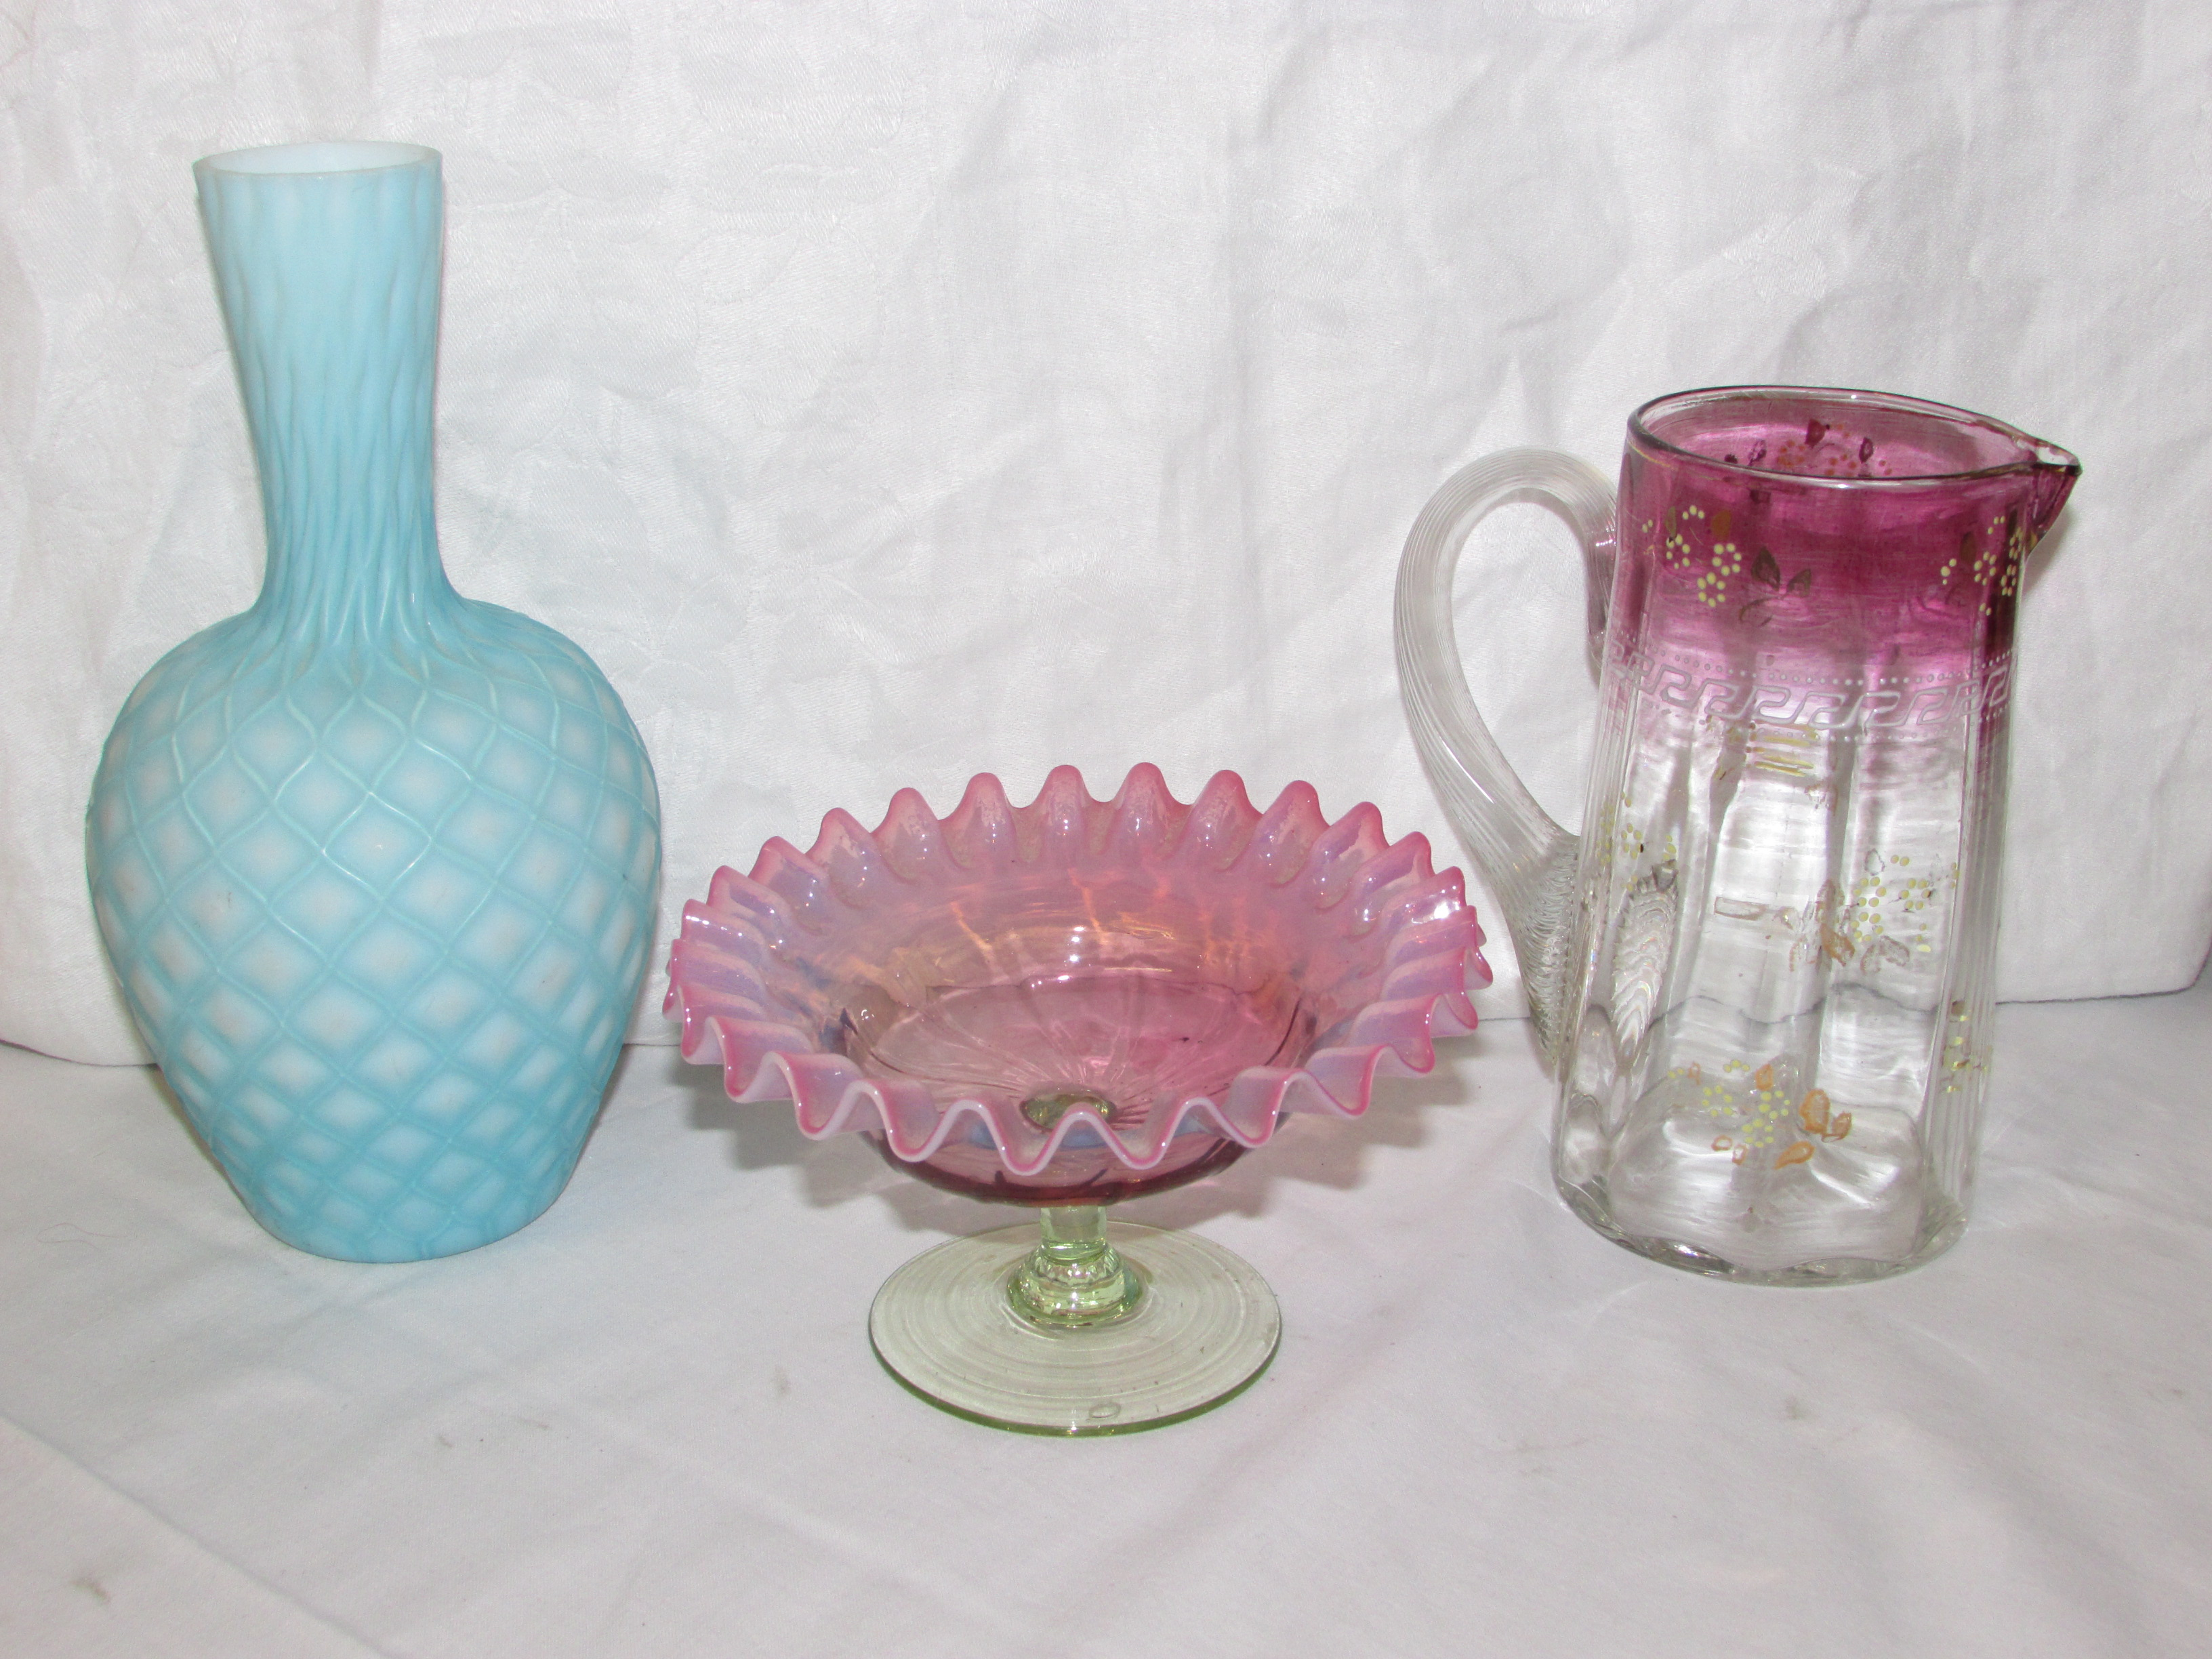 Lot 74 - A Victorian pink and green glass bon bonier with crepe rim (diameter 15cm); a blue and white